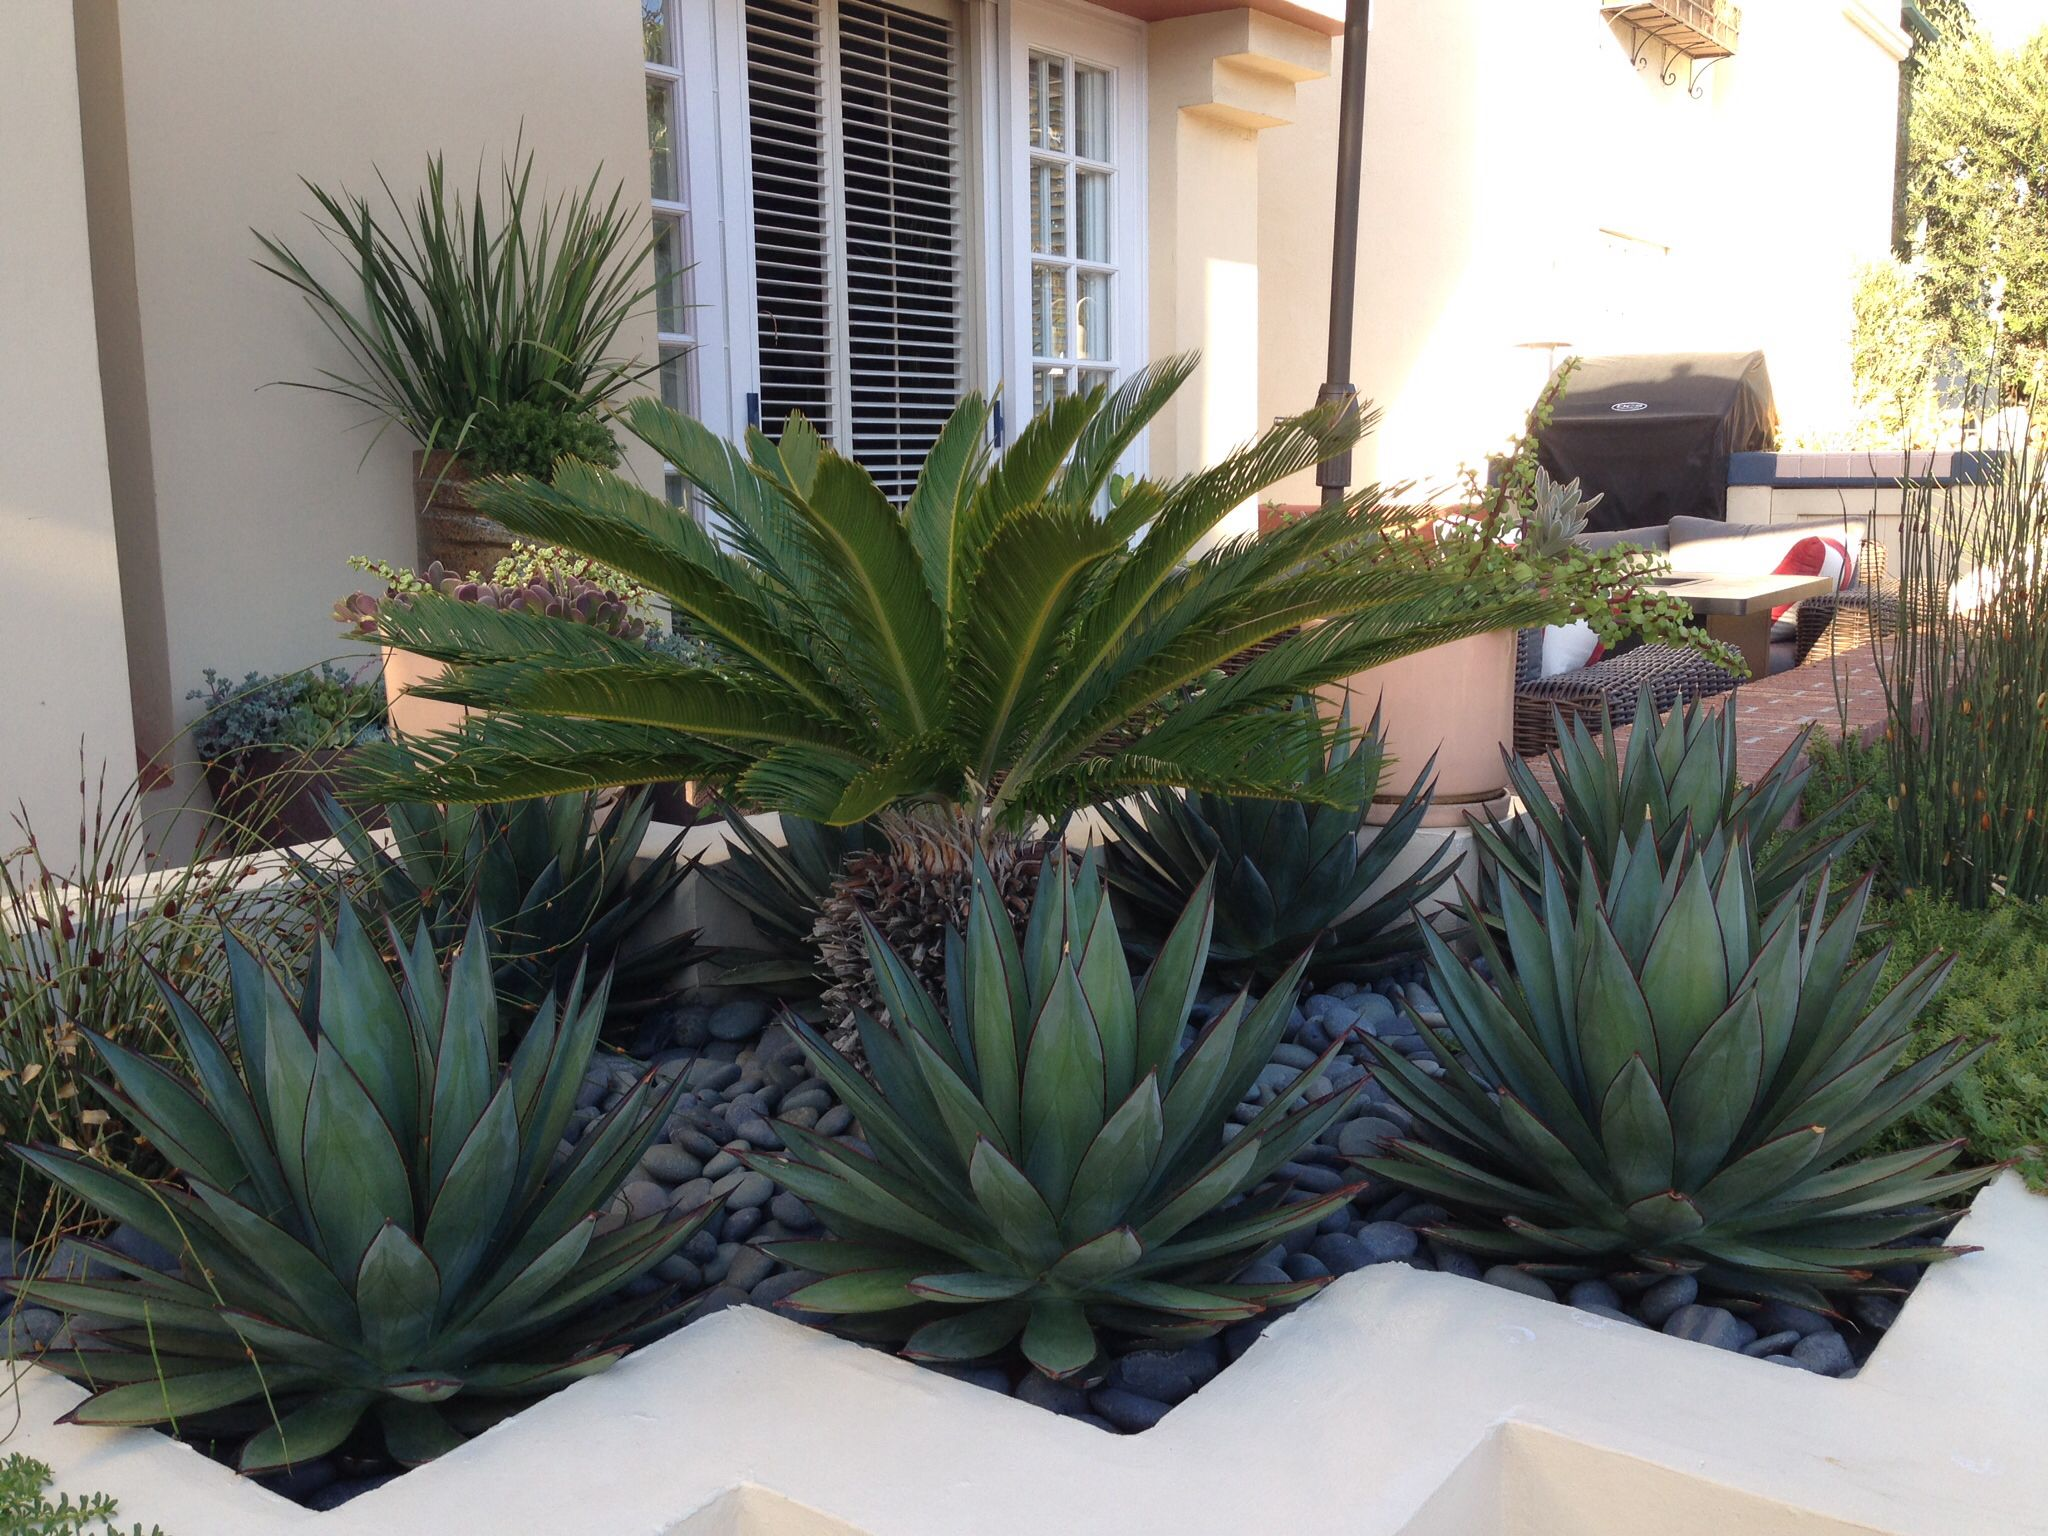 Blue Glow Agave Sago Palm Drought Tolerant